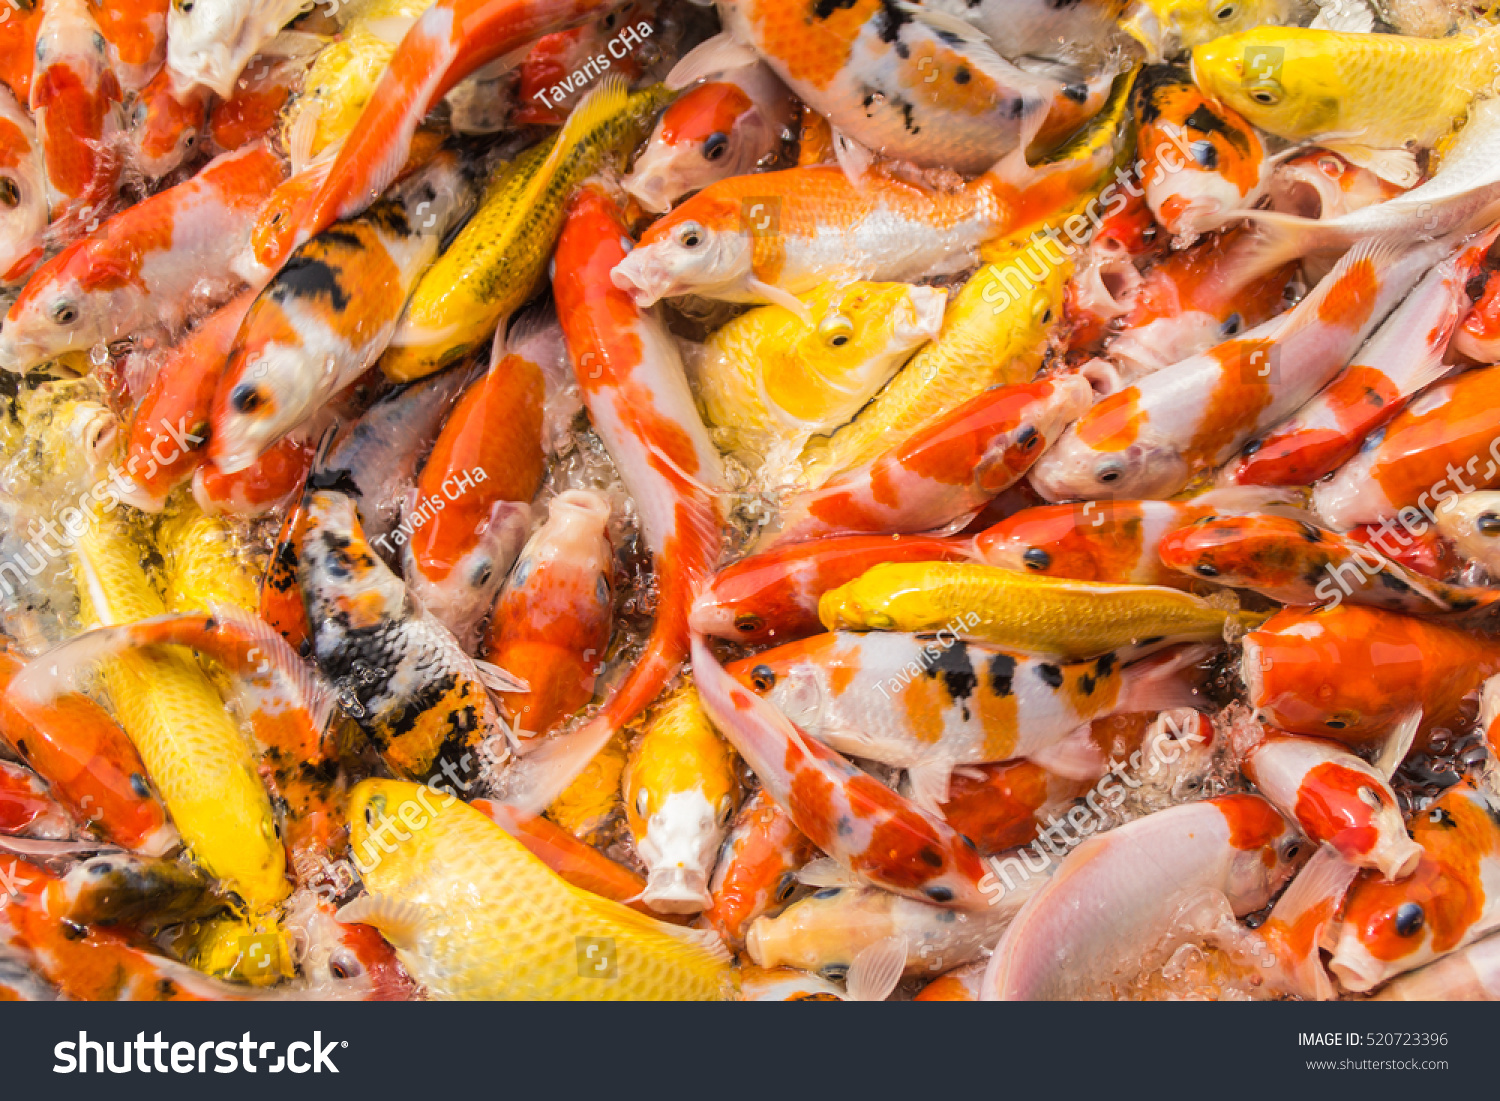 Koi fish pond stock photo 520723396 shutterstock for Koi holding pool